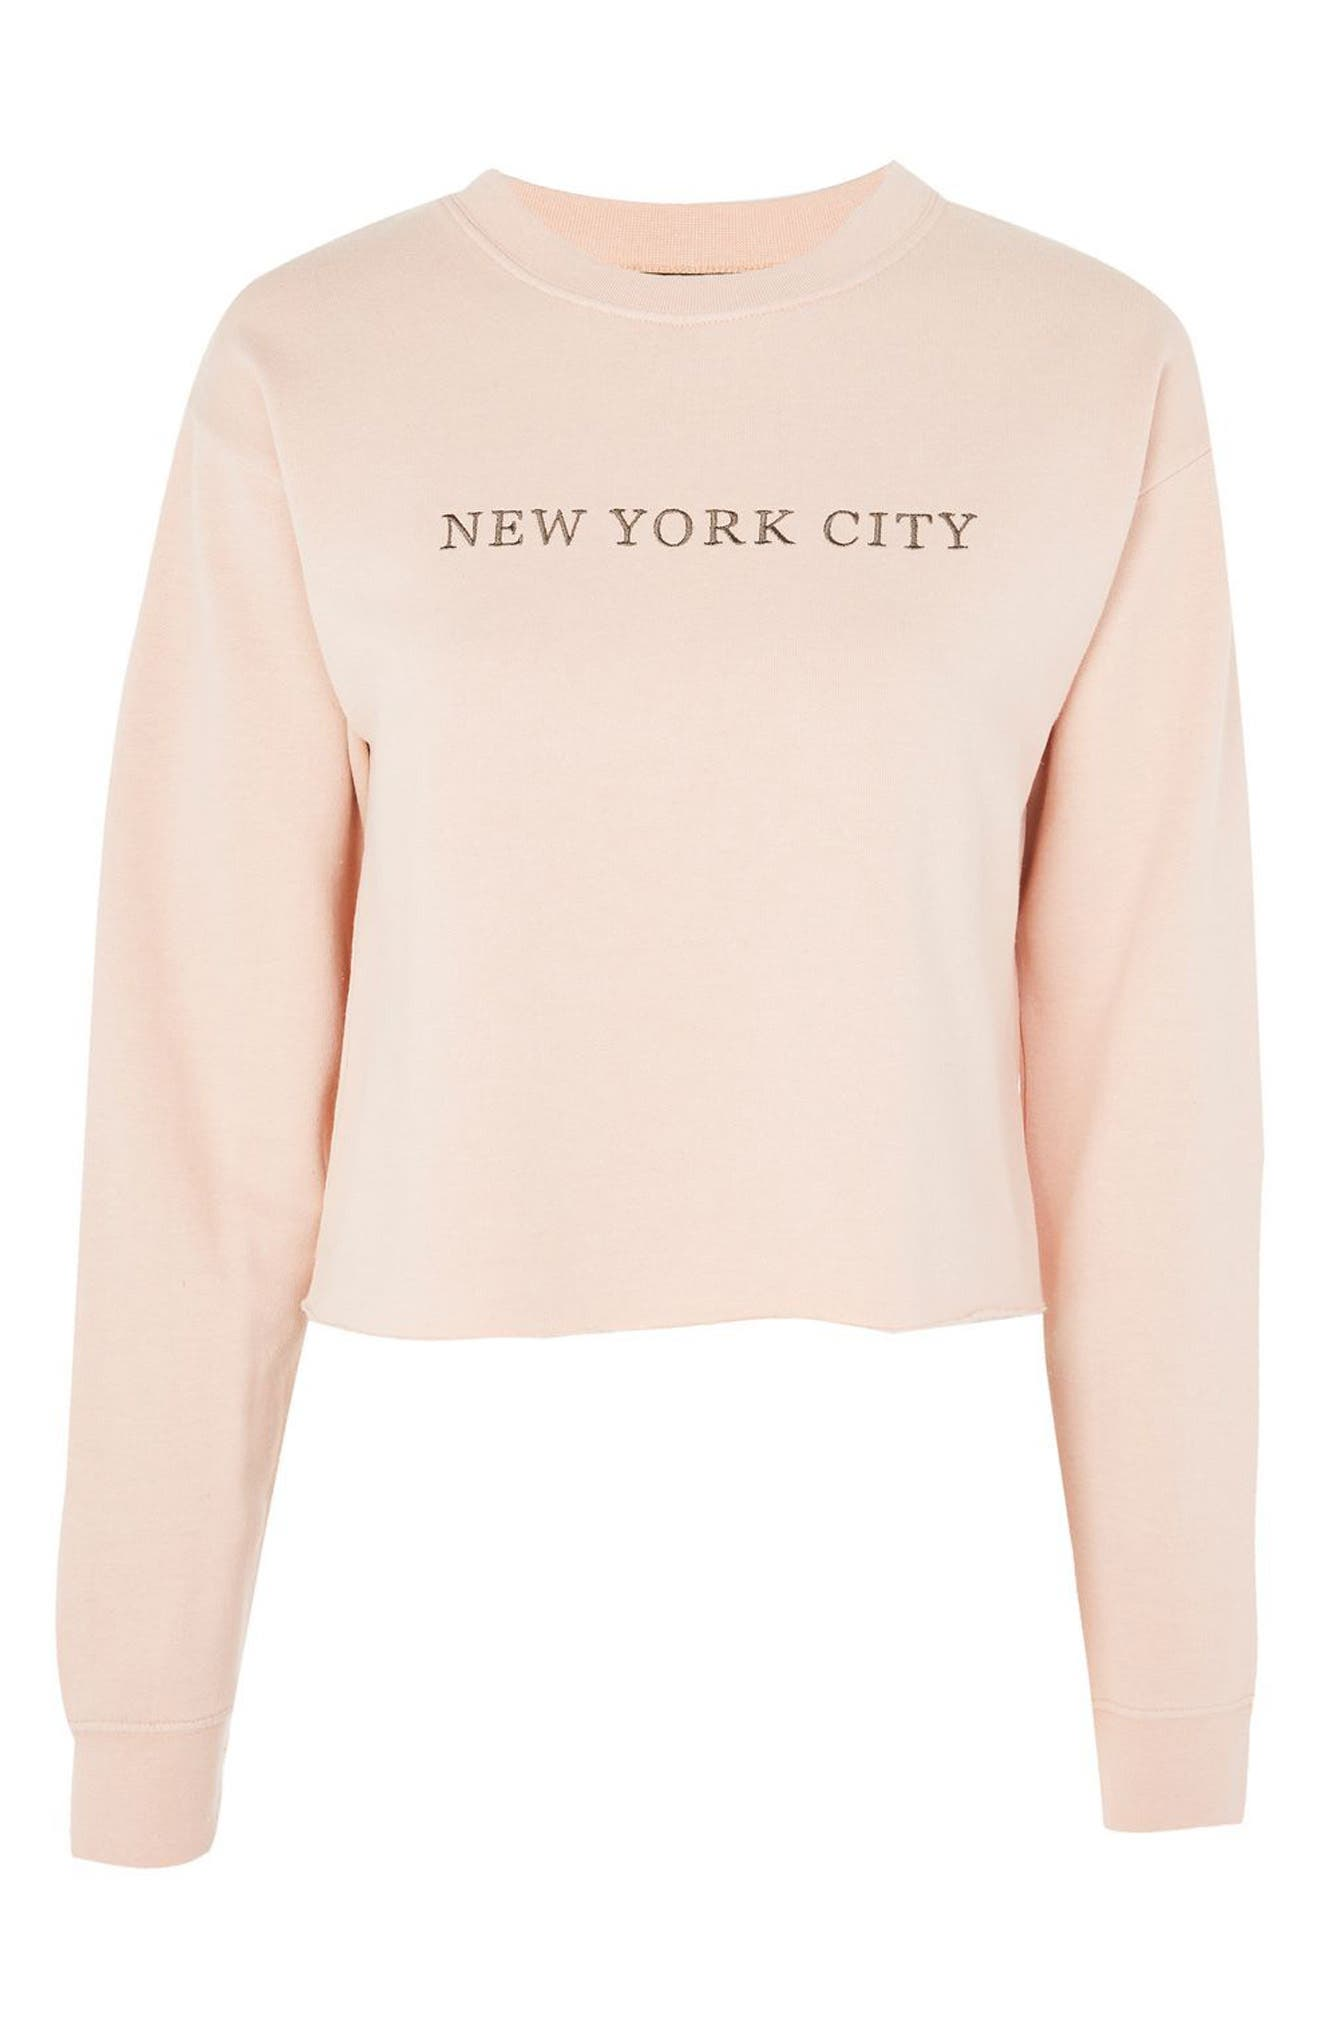 New York City Embroidered Sweatshirt,                             Alternate thumbnail 3, color,                             Pink